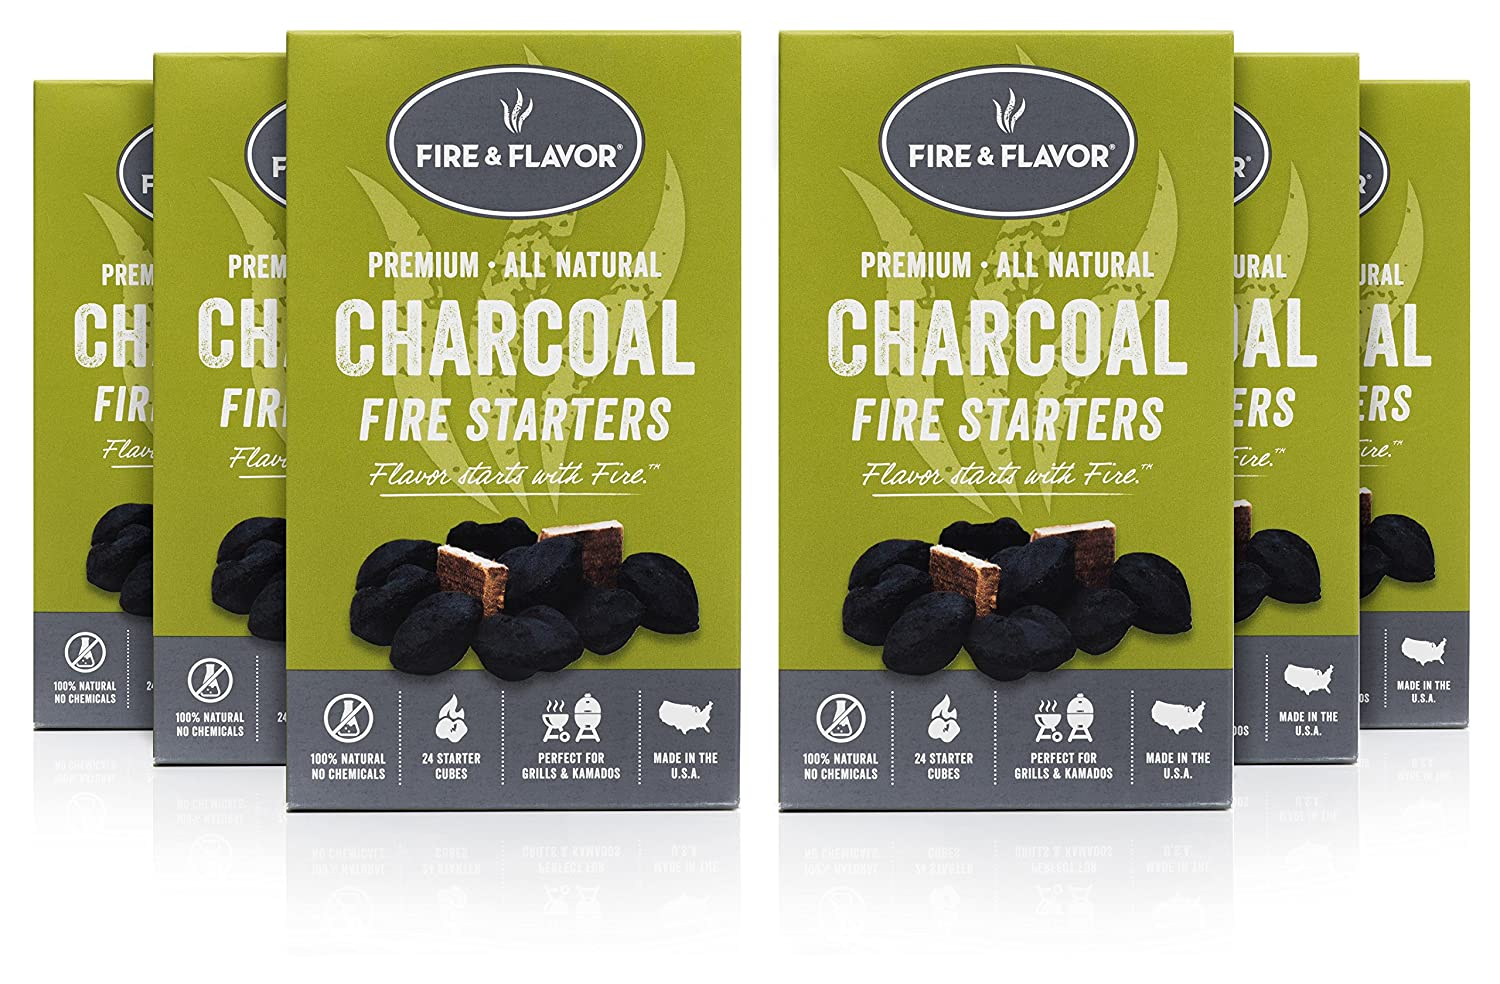 Fire & Flavor Premium All Natural Charcoal Fire Starters, 24 Count, Pack of 6